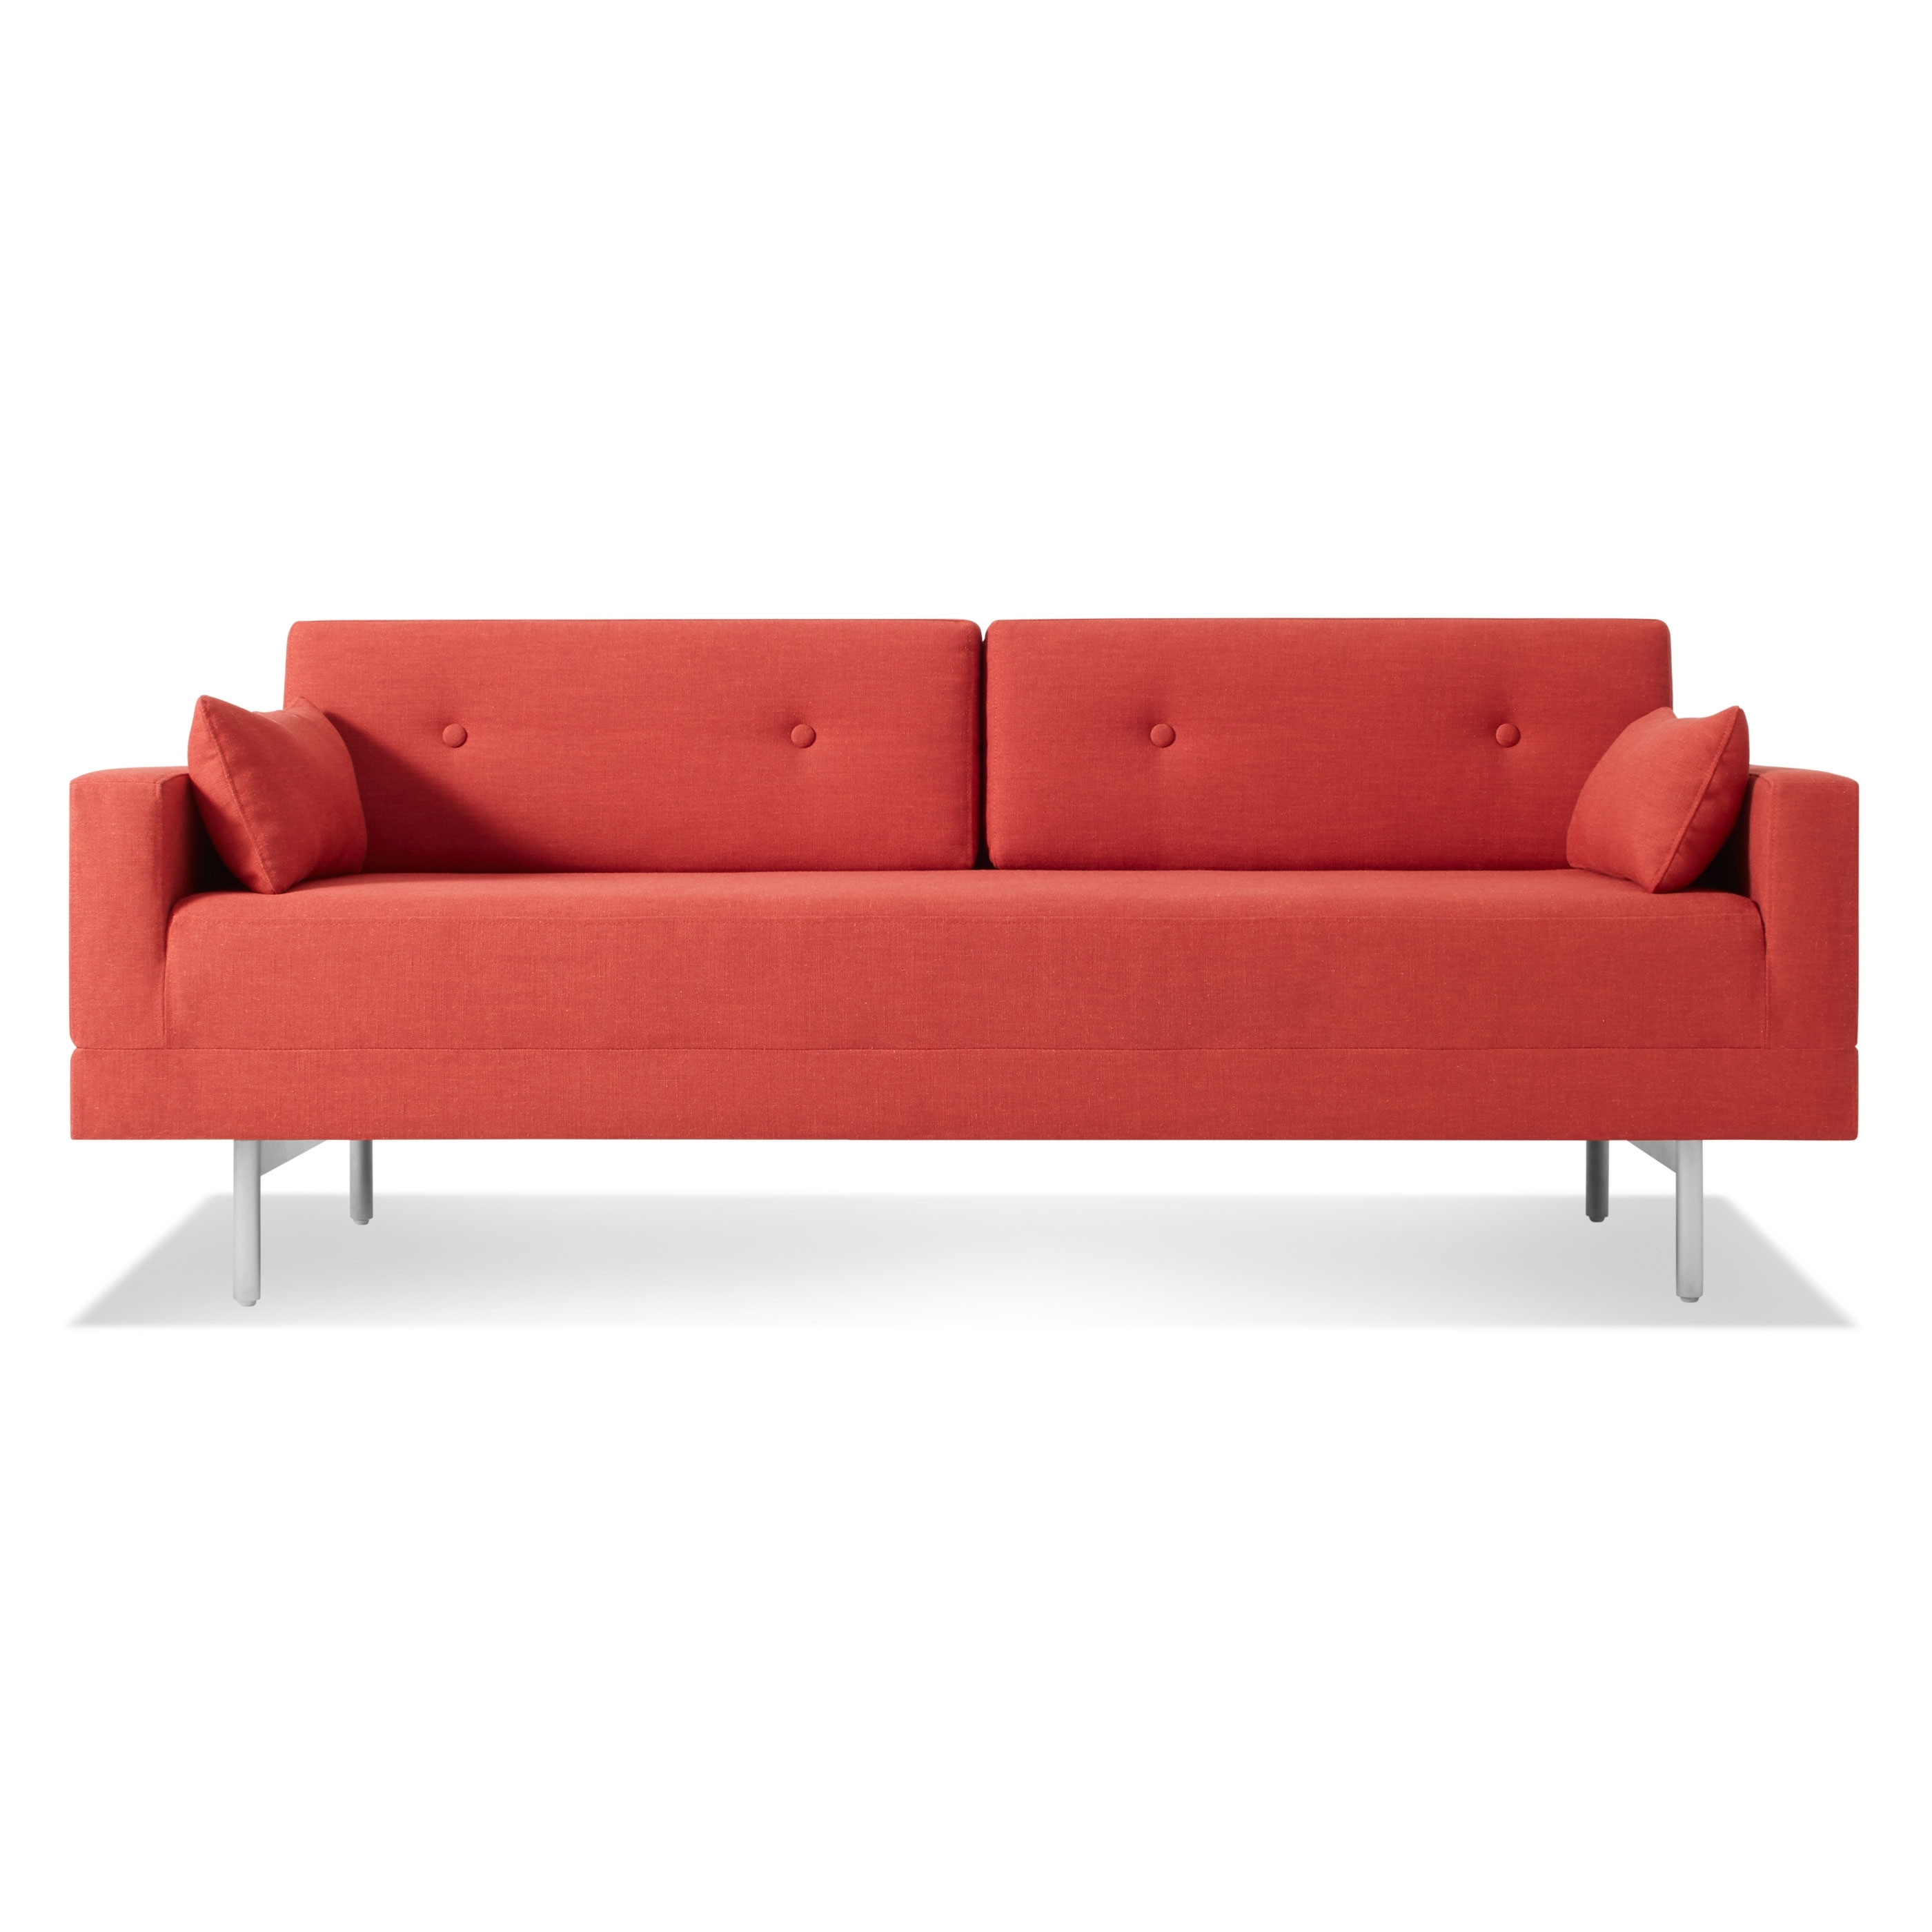 Red Sleeper Sofas Intended For Current One Night Stand Modern Queen Sleeper Sofa (View 2 of 20)